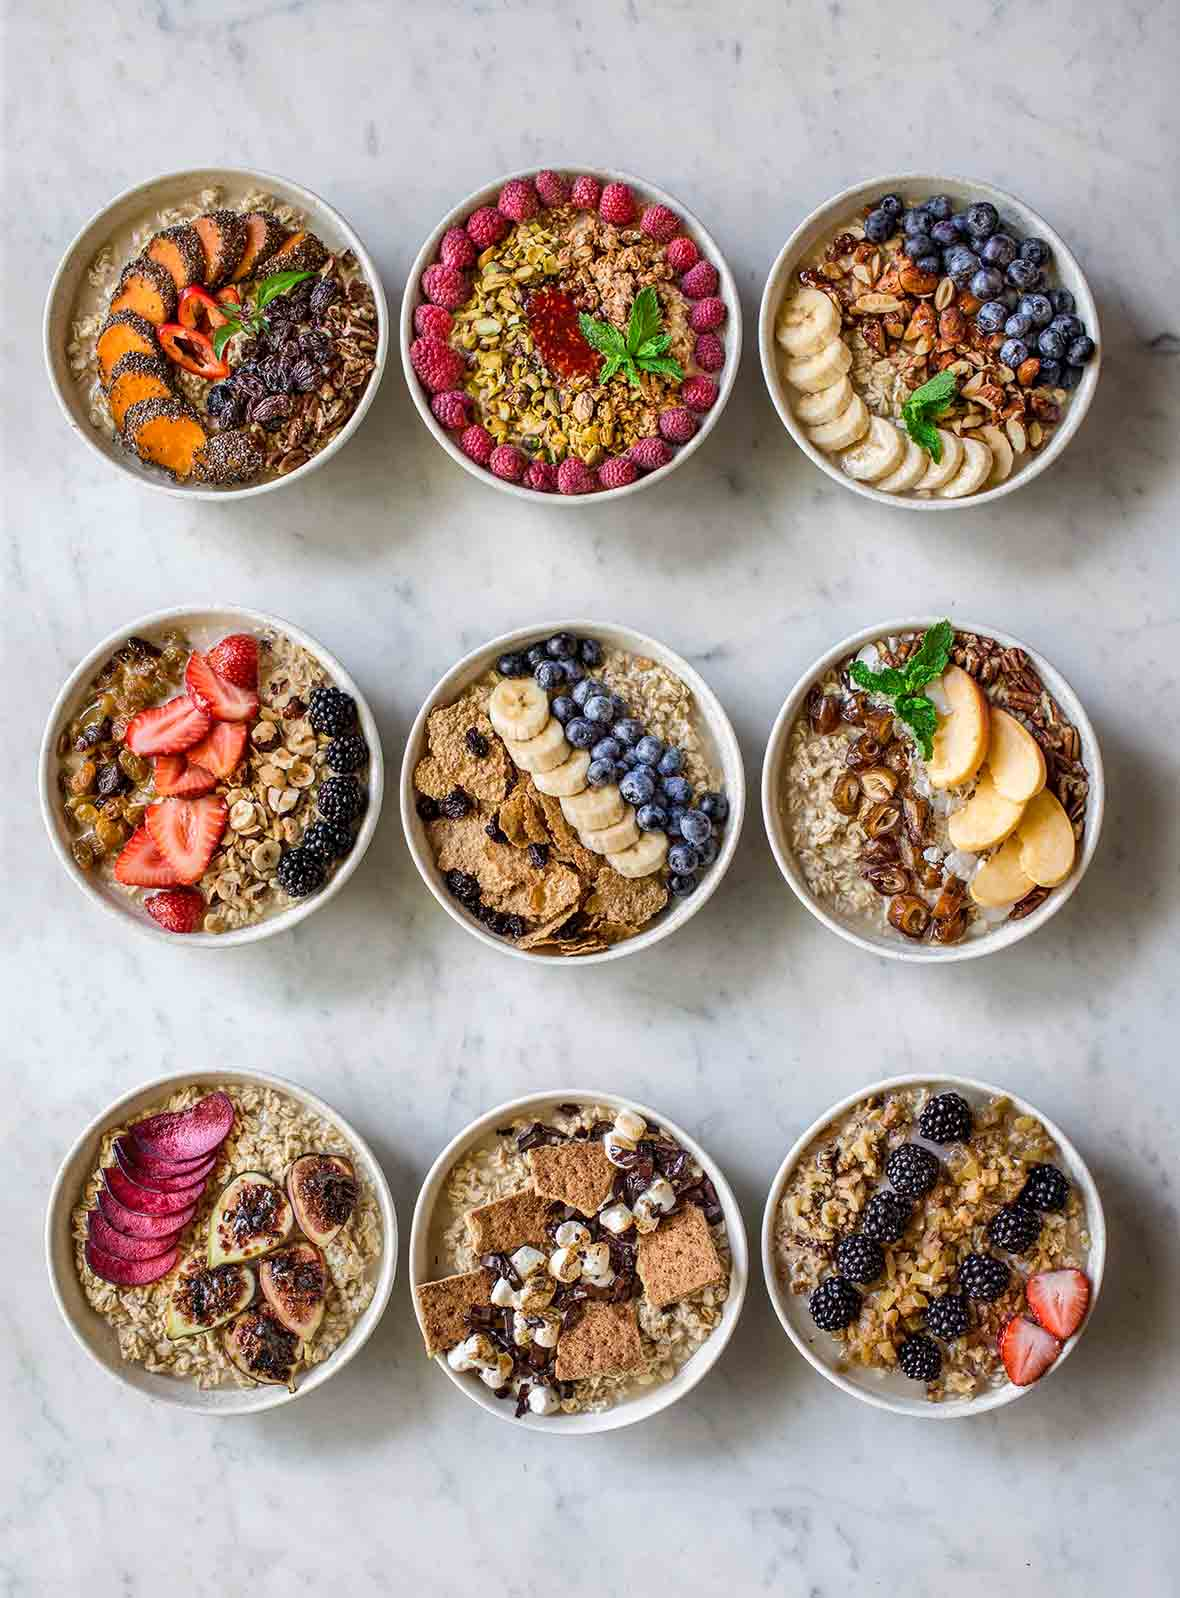 Nine bowls of oatmeal with different toppings created from an oatmeal bar